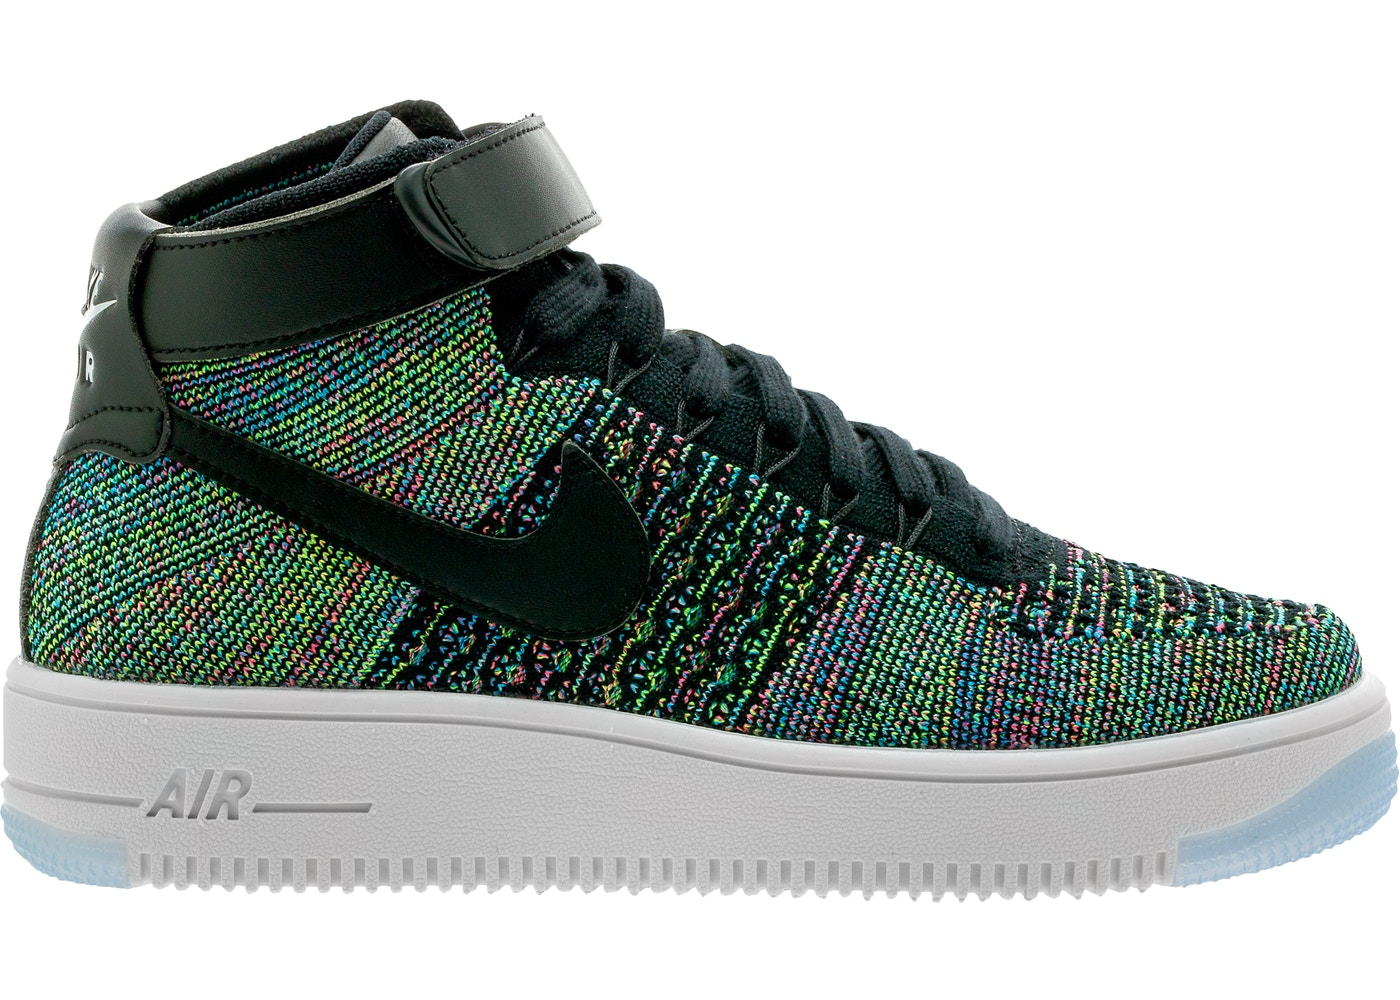 Air Force 1 Ultra Flyknit Mid Multicolor 20 minimalist